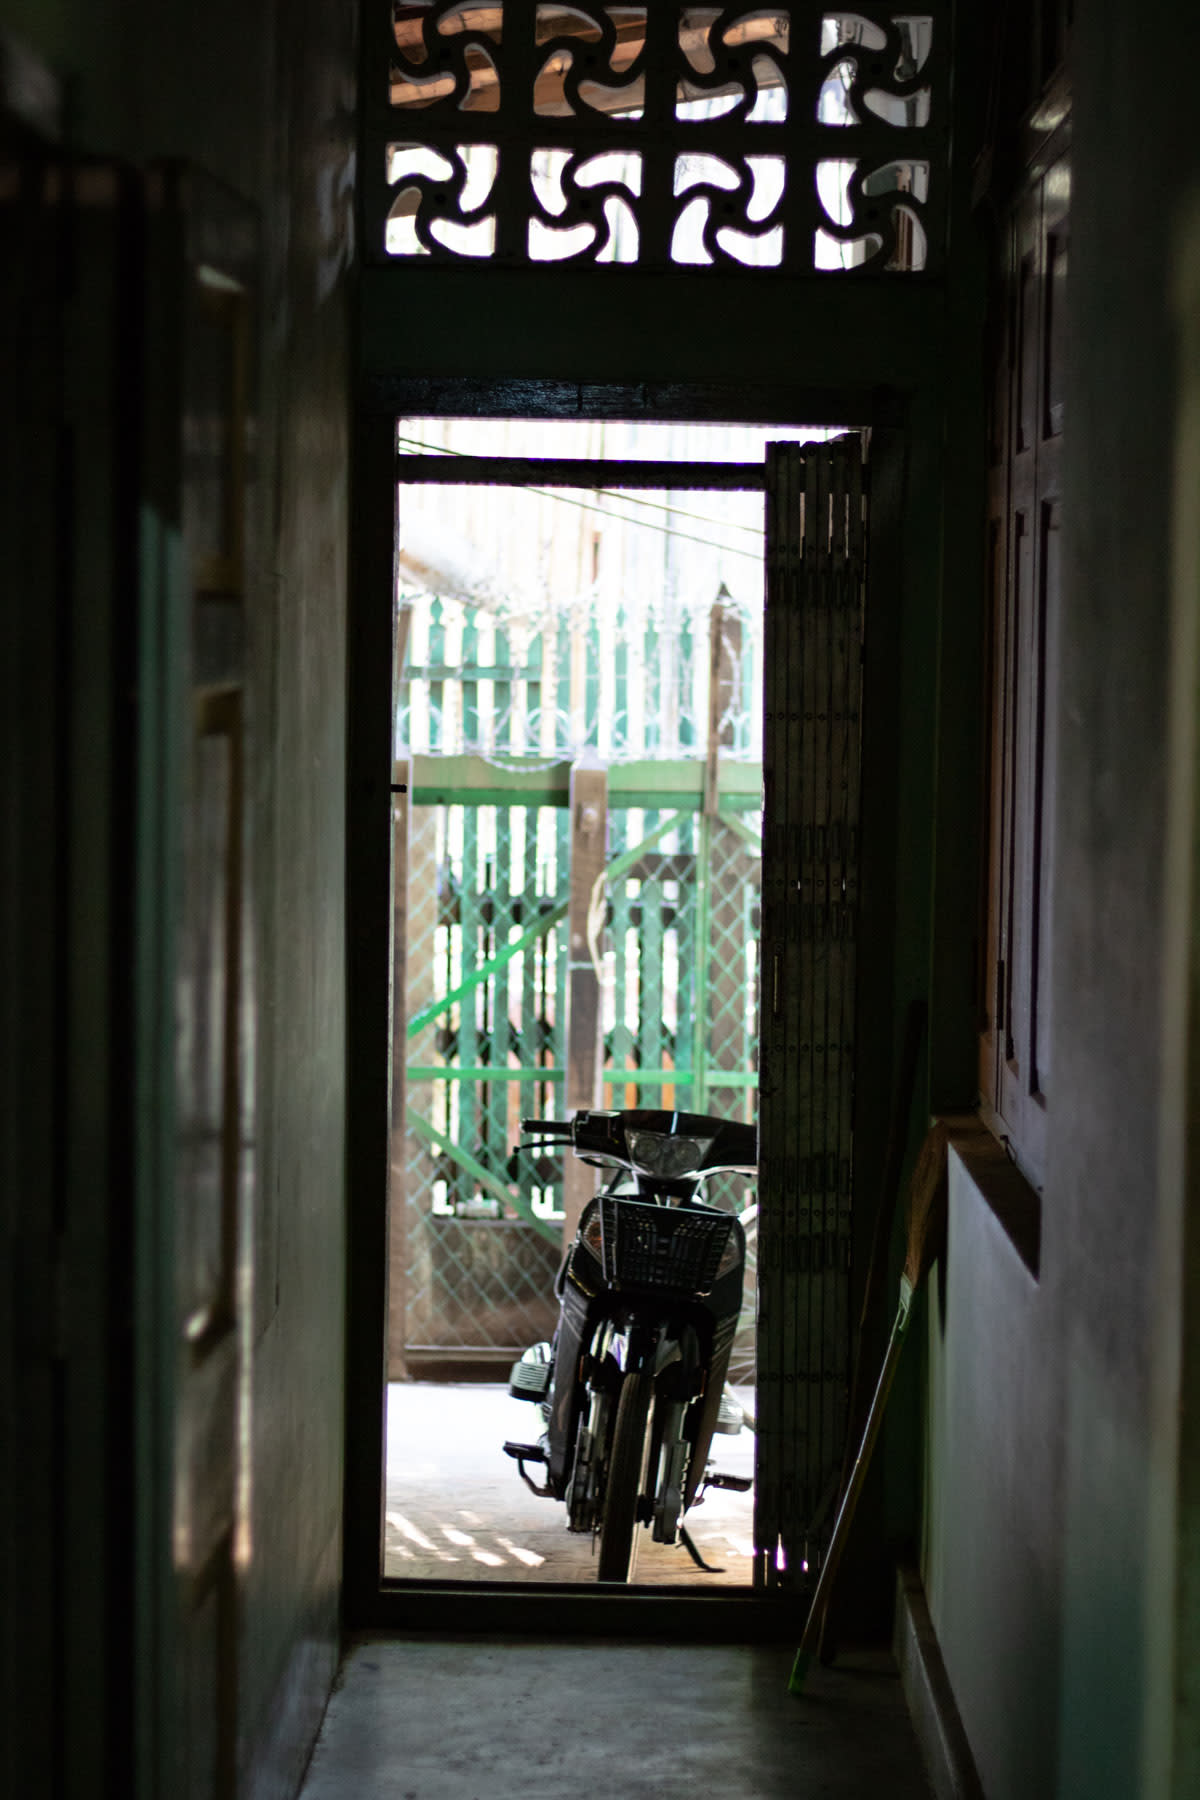 A motorbike leaning on a doorway